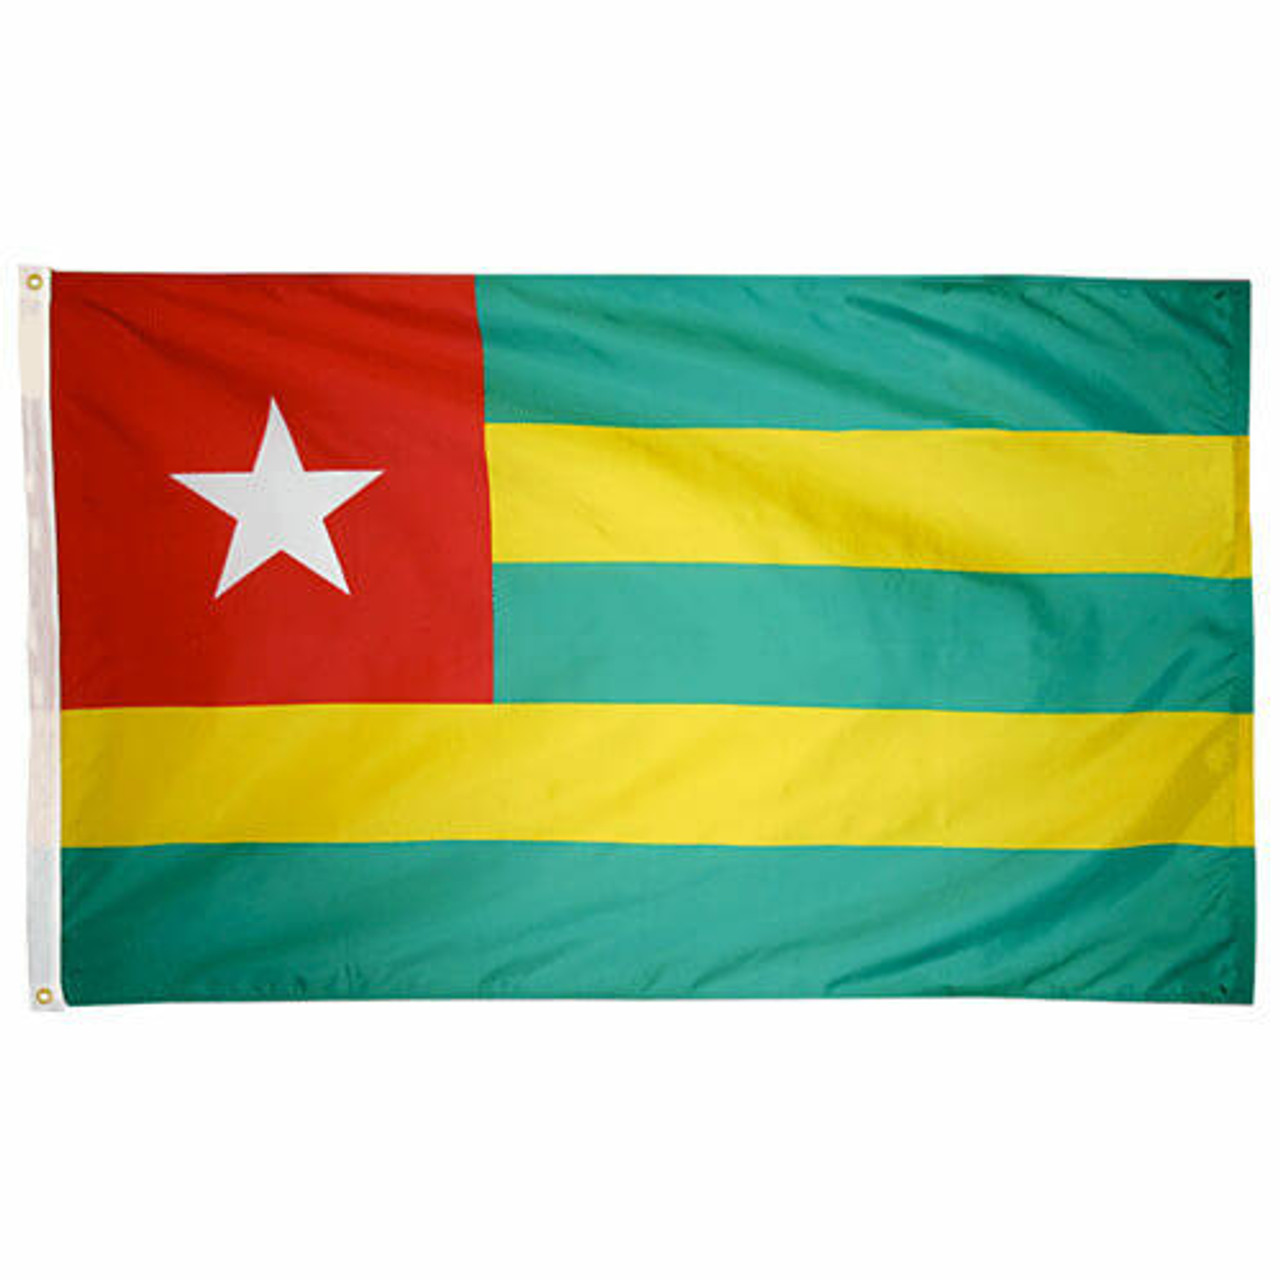 The Togo national flag consists of three horizontal green stripes, offset by two yellow stripes, and a red canton with a large white star.